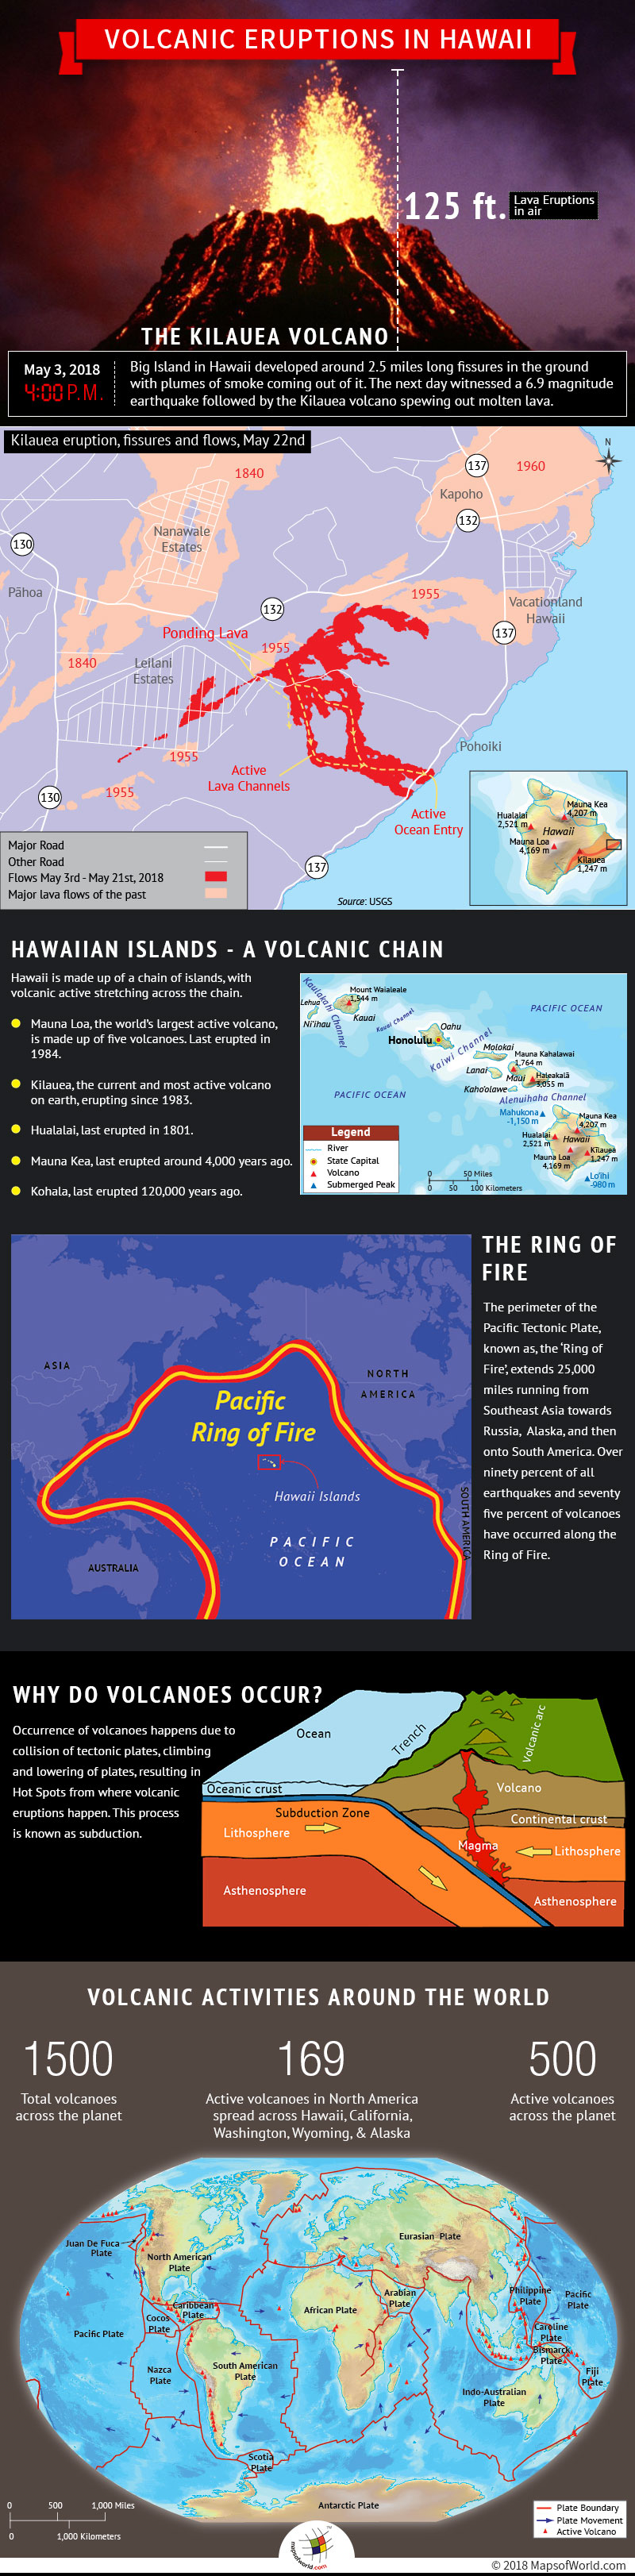 Infographic - Hawaii Volcanic Eruptions